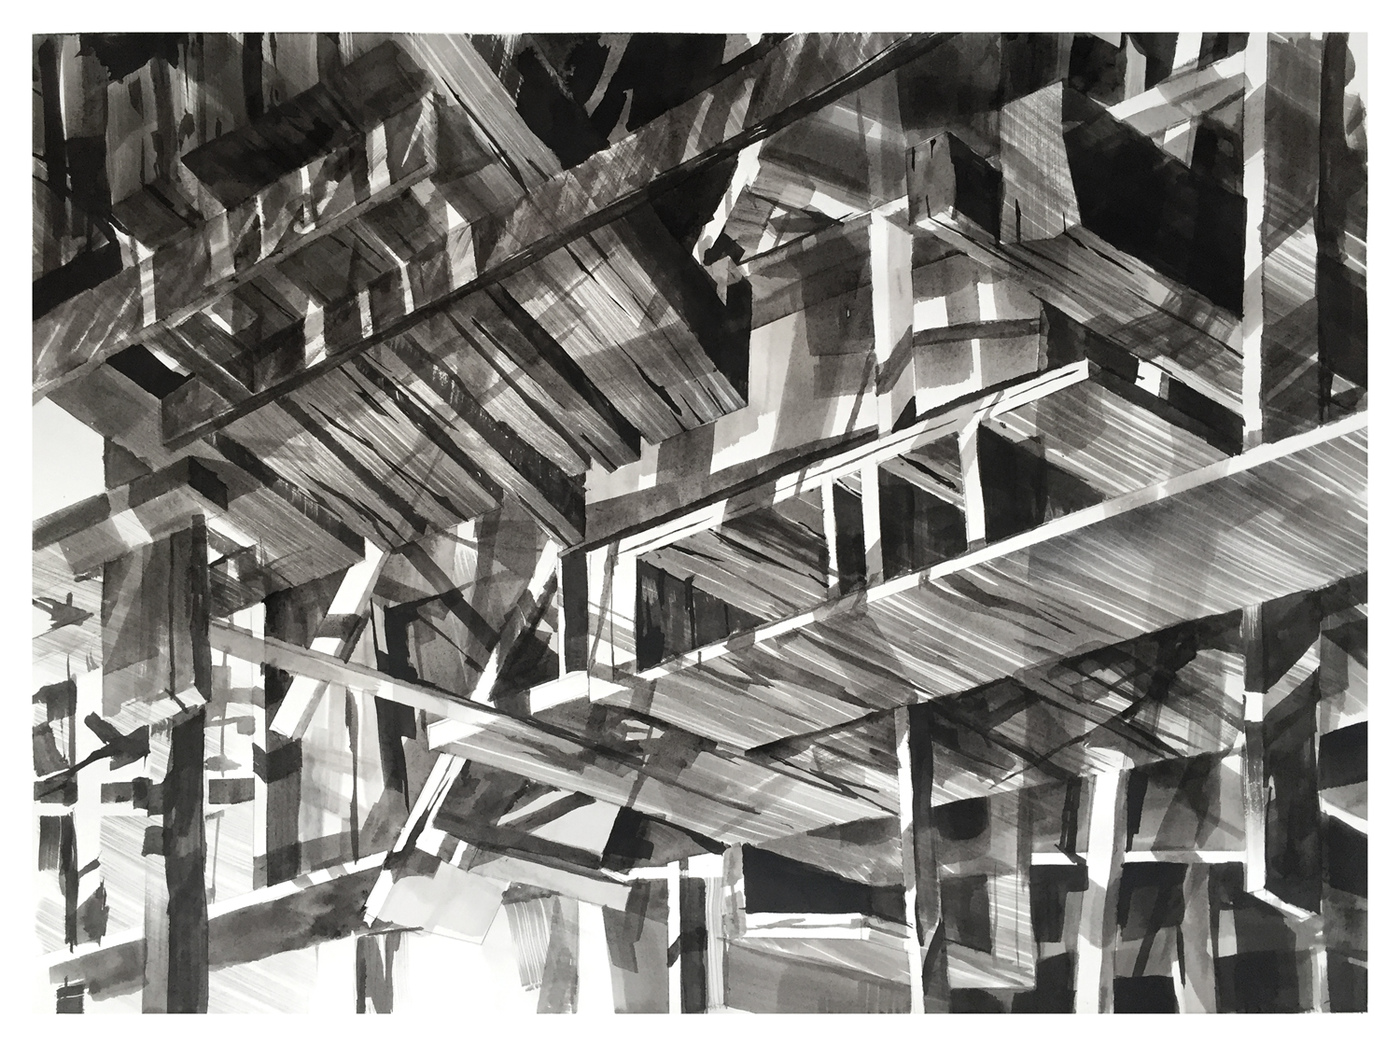 Image of Abstract Architectural Art by Scott Tulay